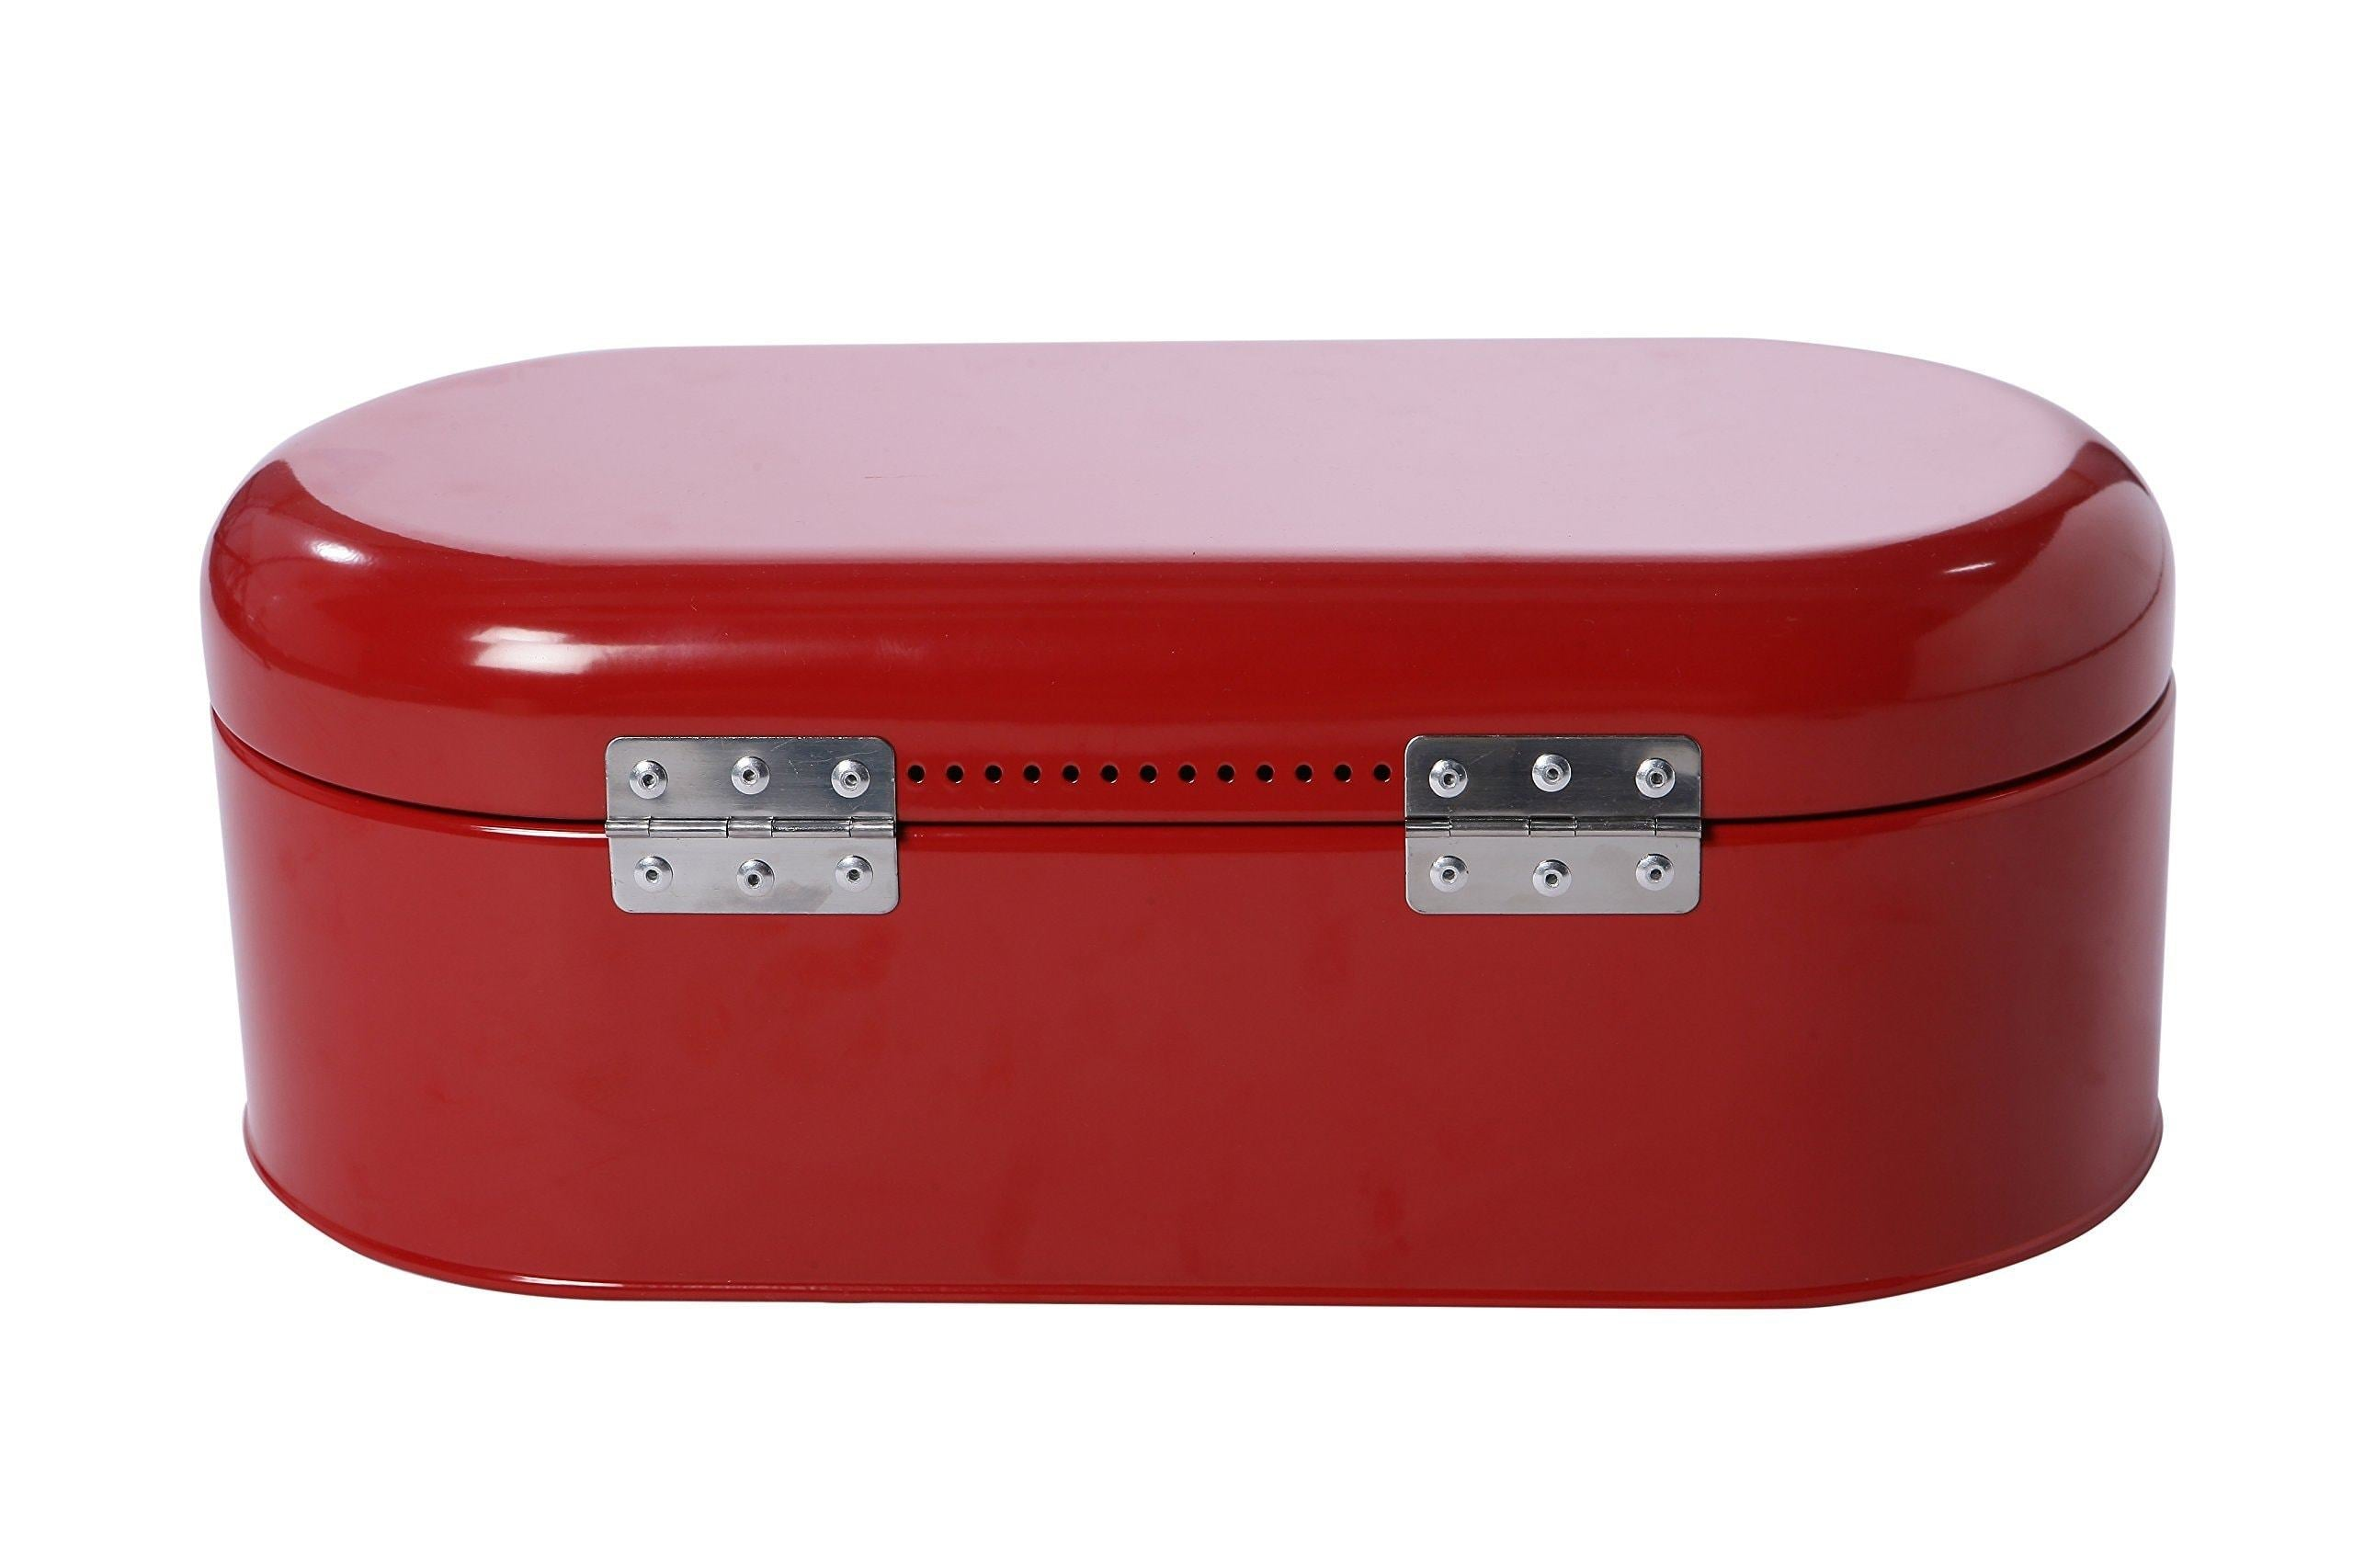 New large bread box for kitchen counter bread bin storage container with lid metal vintage retro design for loaves sliced bread pastries red 17 x 9 x 6 inches